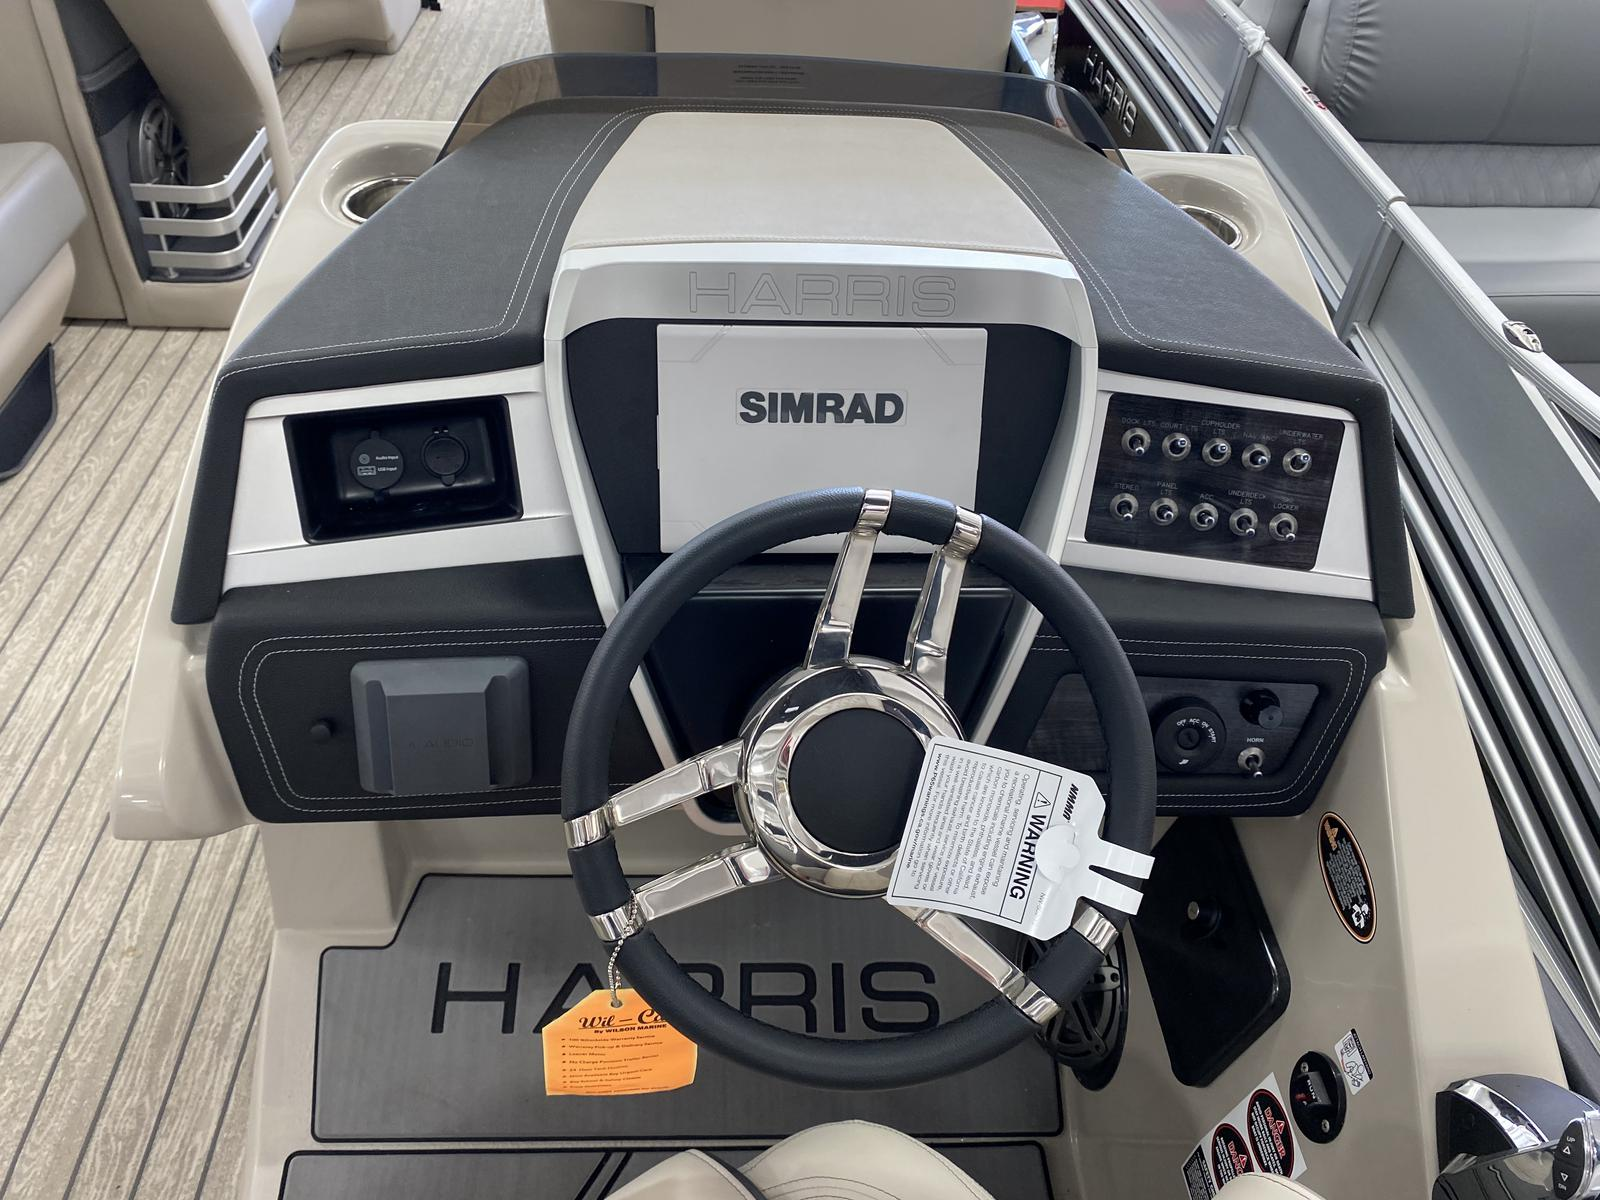 2020 Harris boat for sale, model of the boat is Grand Mariner 270 & Image # 3 of 12